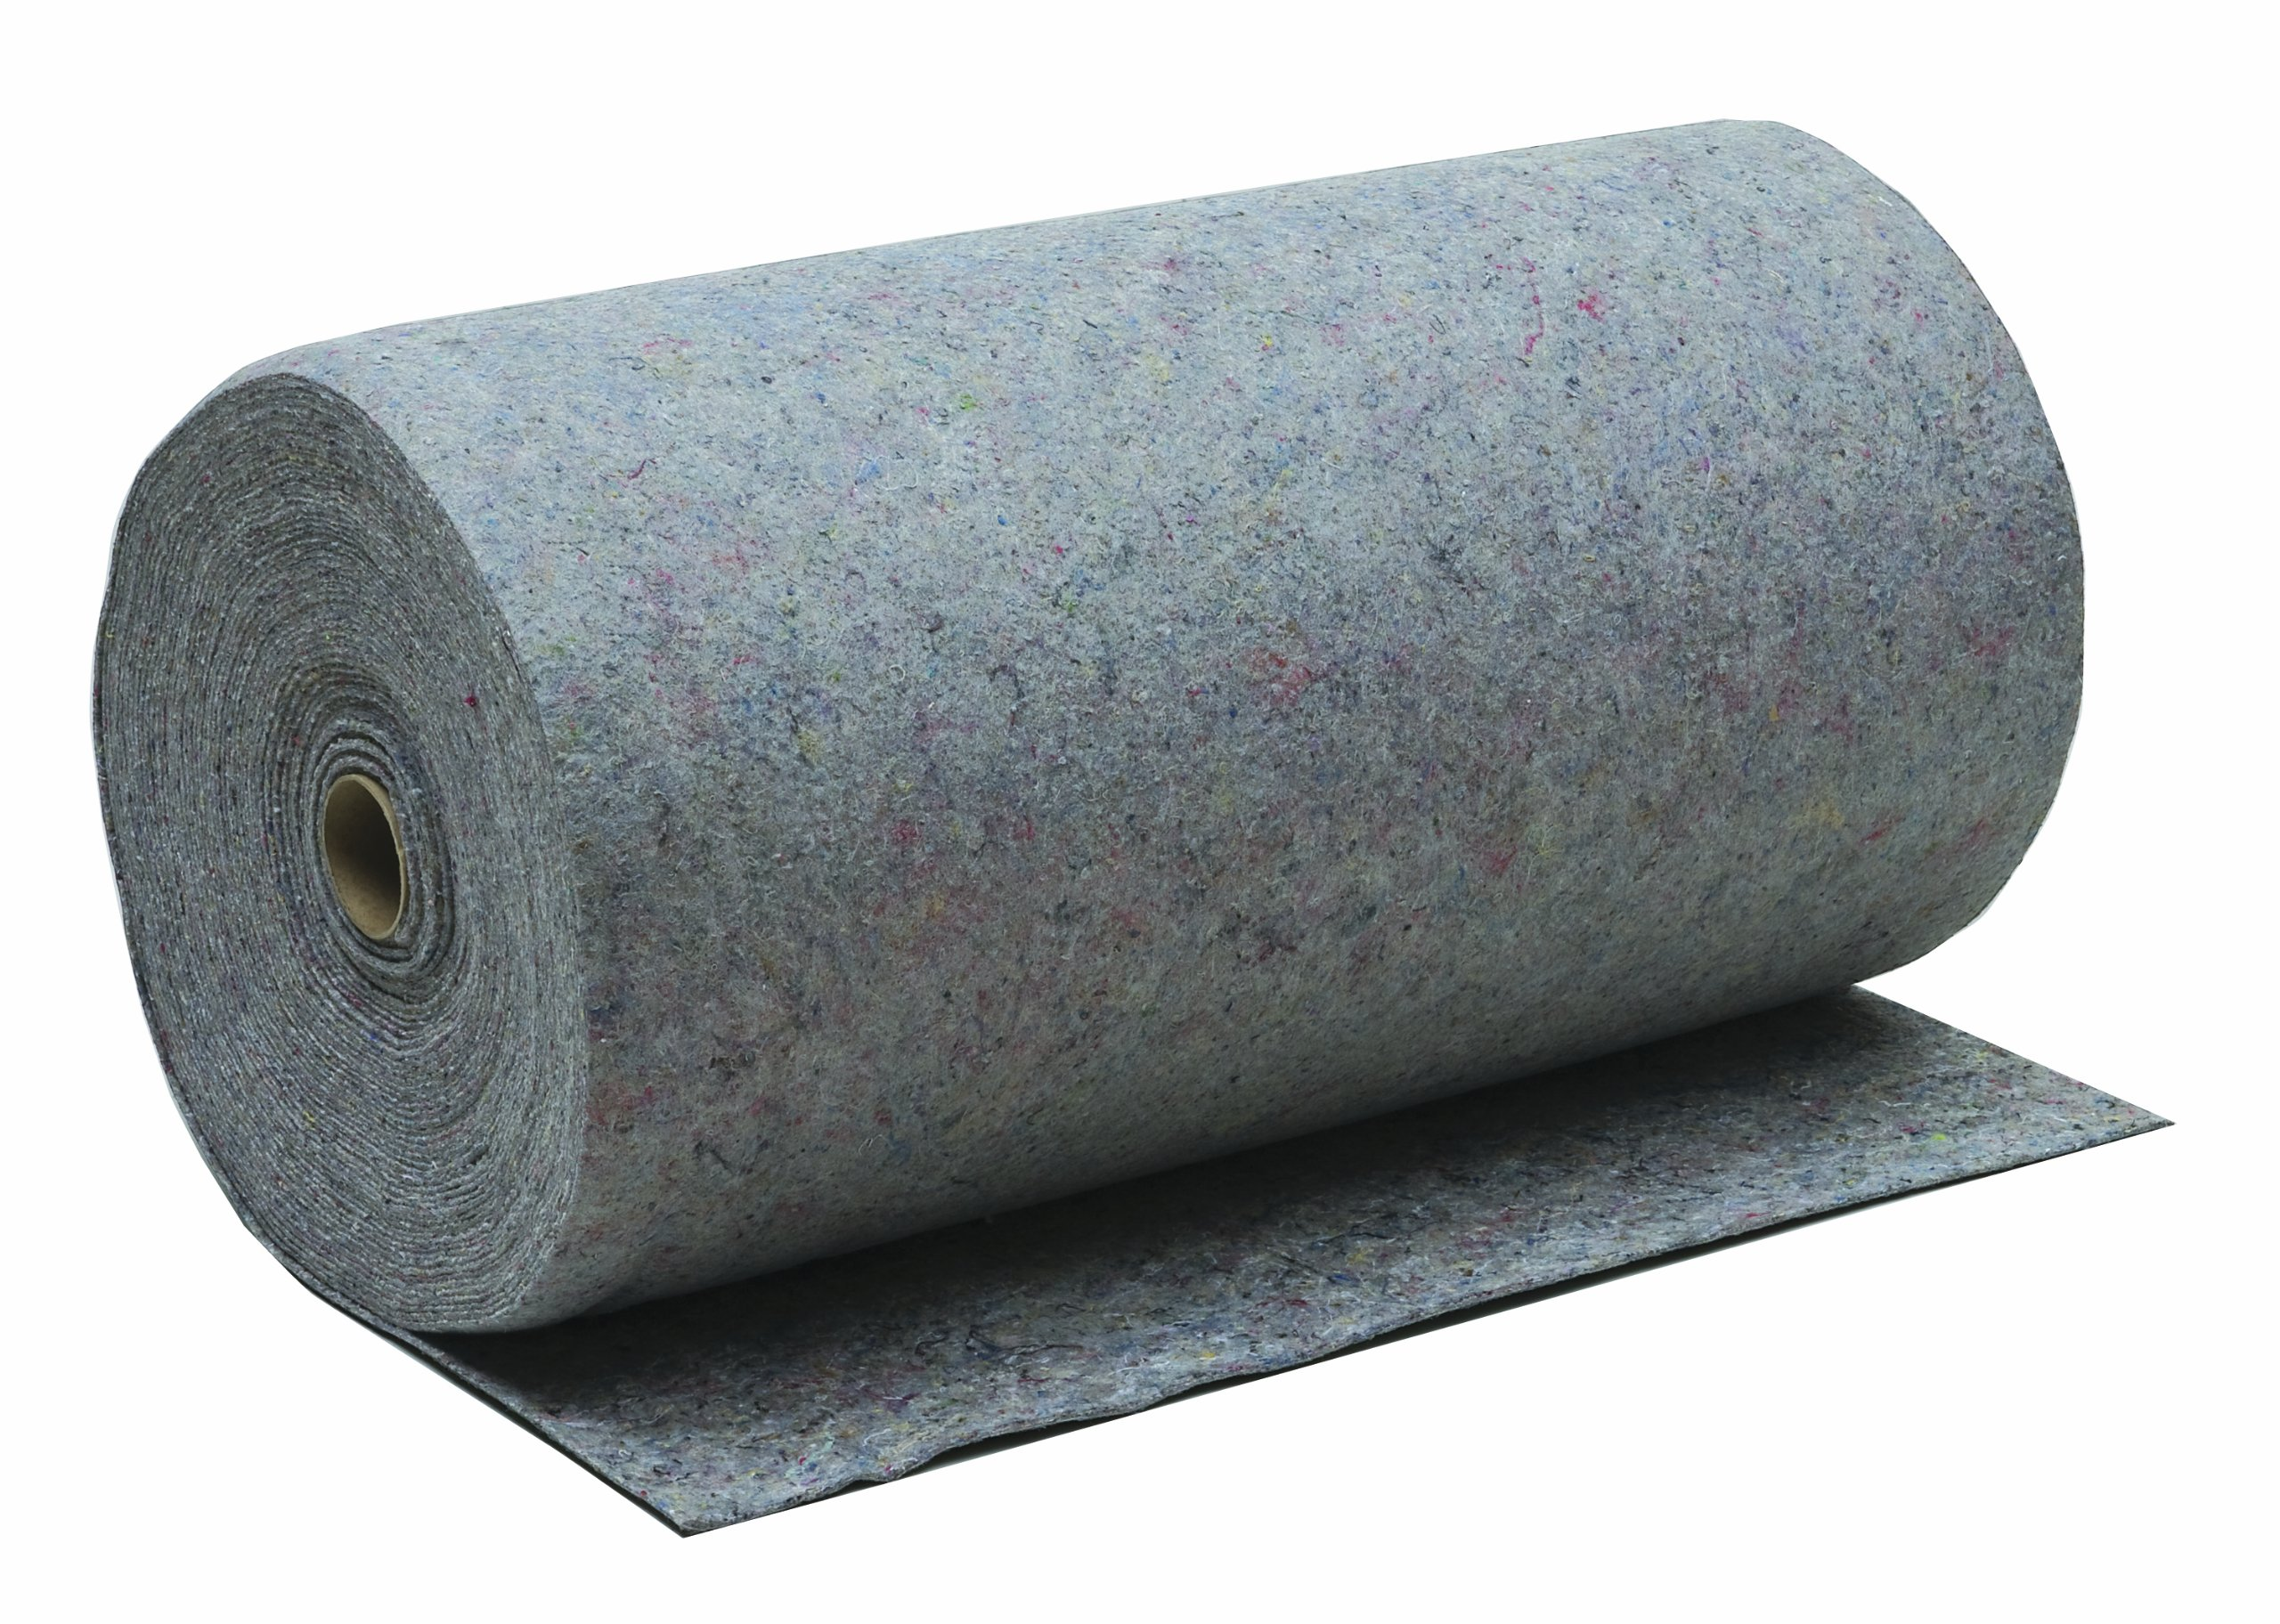 Oil Eater AOA-TUFFRUG-GREY 36x150 Industrial Rug by Oil Eater